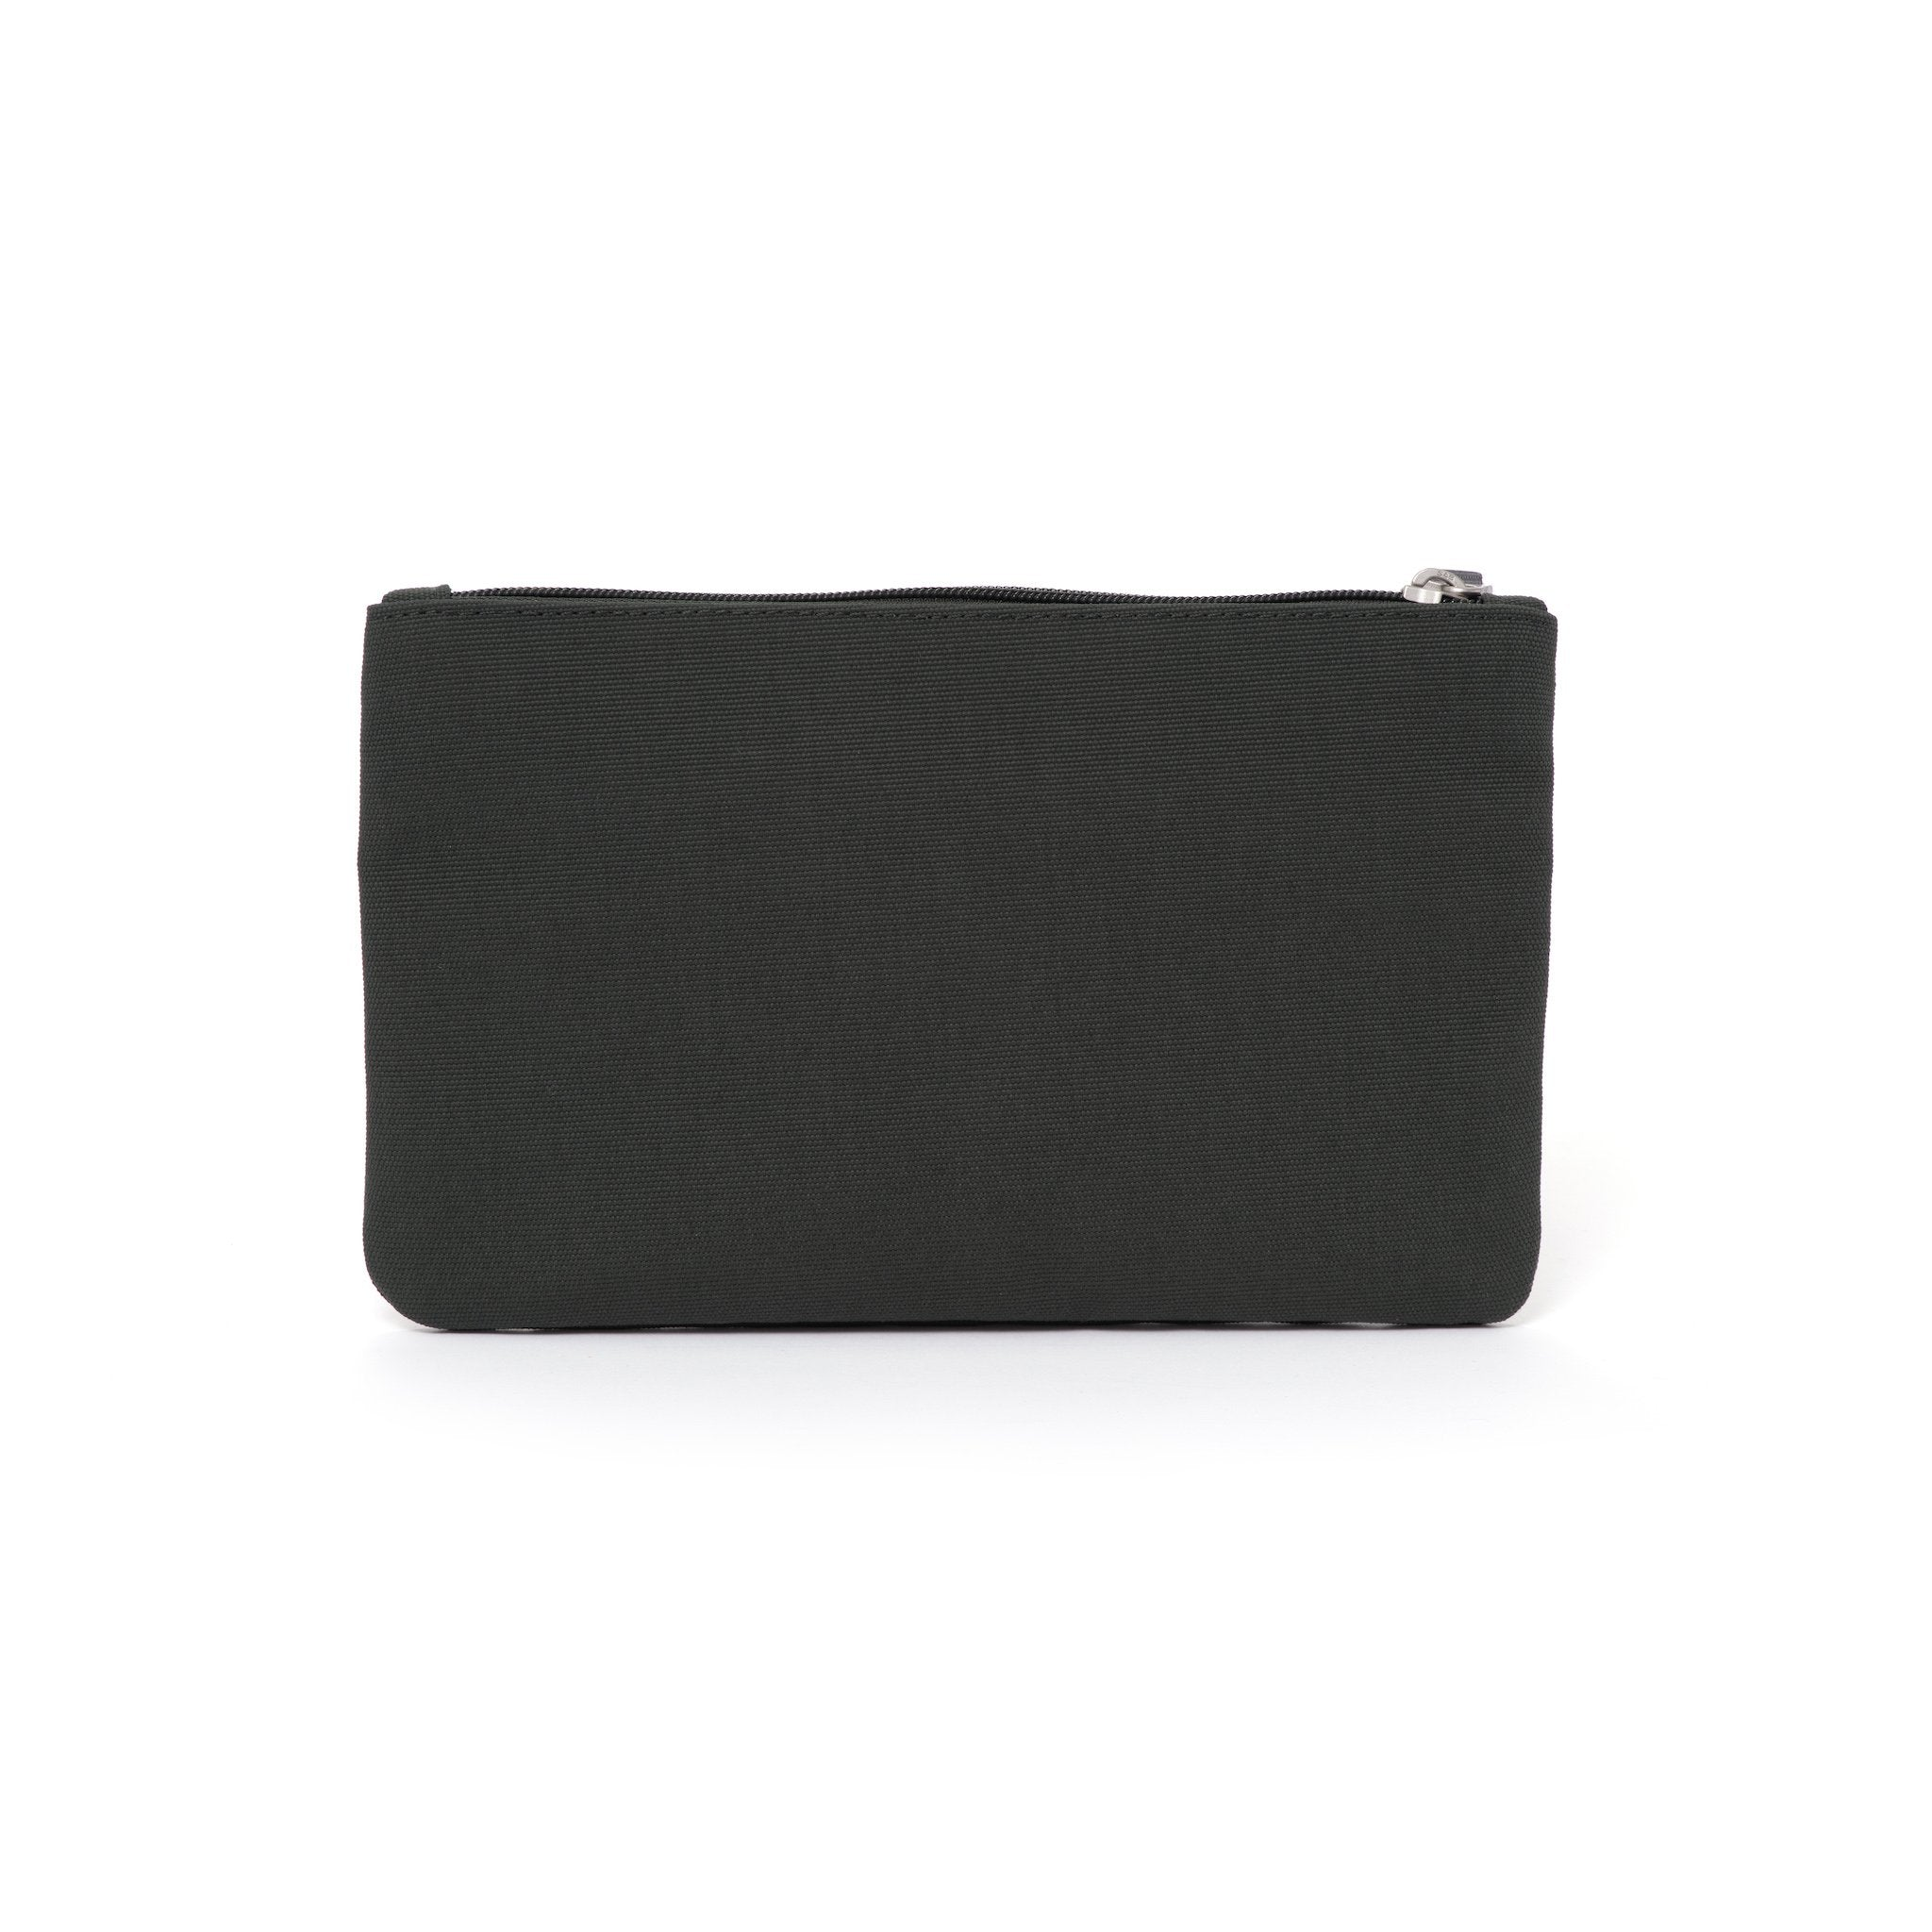 Grey canvas travel wallet.